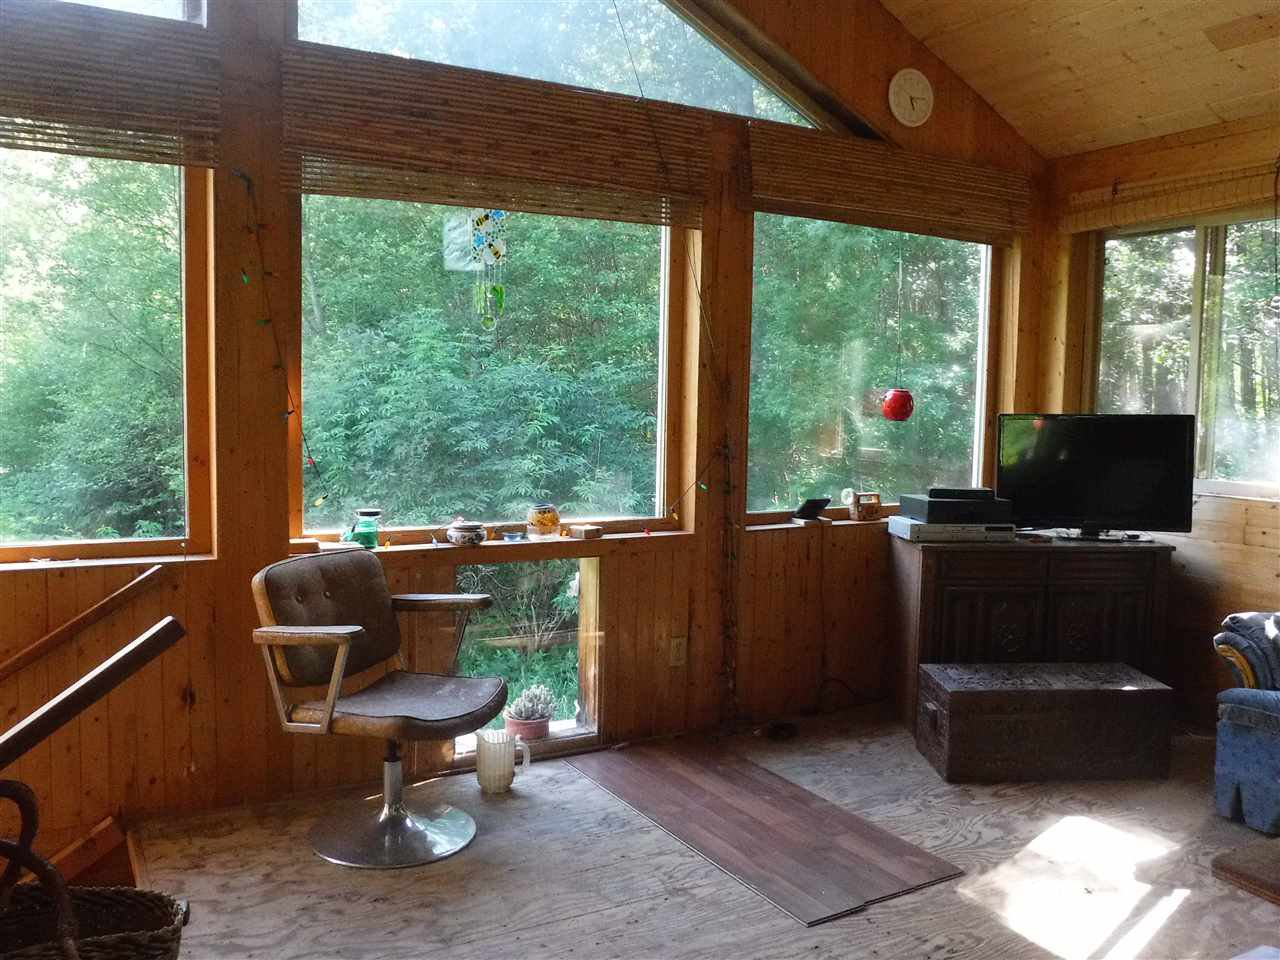 Photo 4: Photos: 3736 20 Highway in Bella Coola: Bella Coola/Hagensborg House for sale (Williams Lake (Zone 27))  : MLS®# R2376163